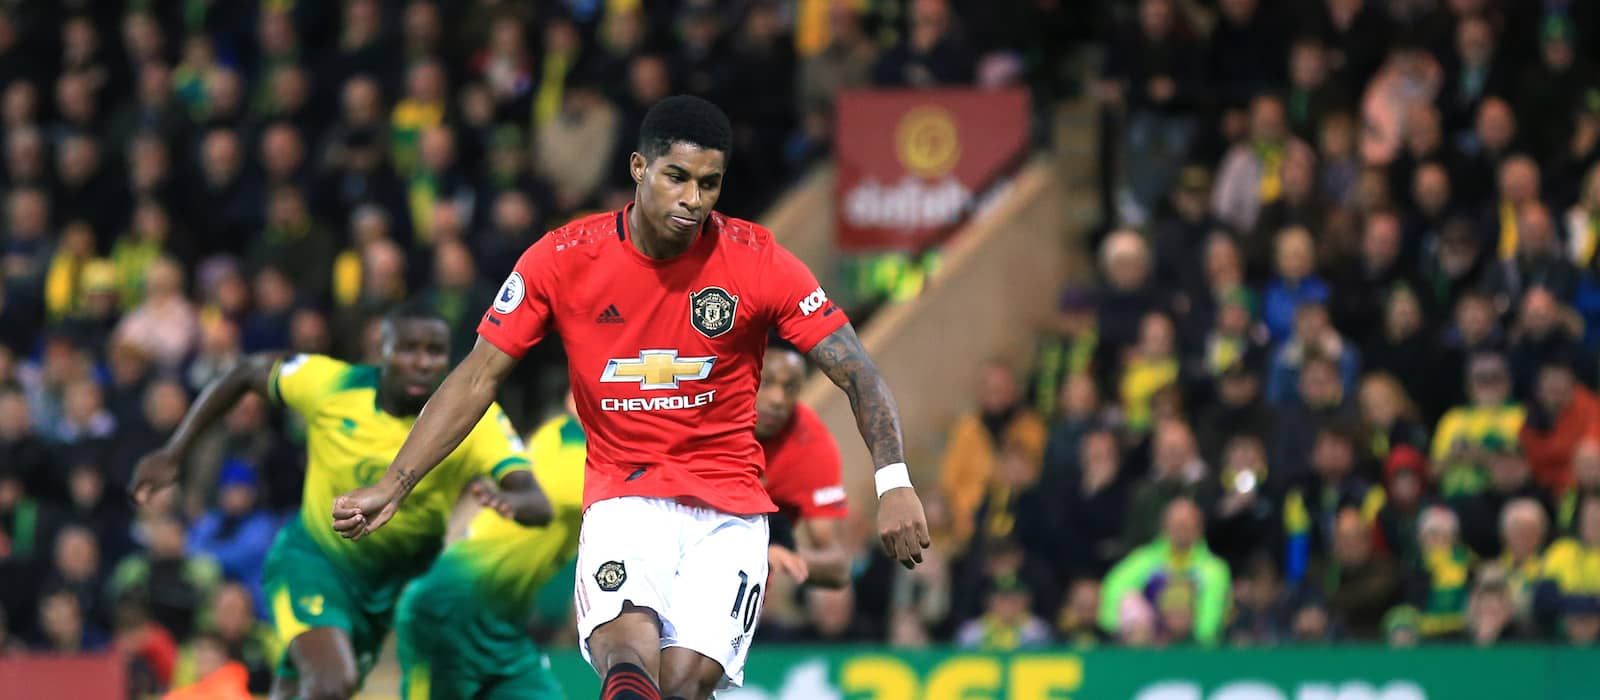 Bournemouth vs. Manchester United: Potential XI with Marcus Rashford, Anthony Martial